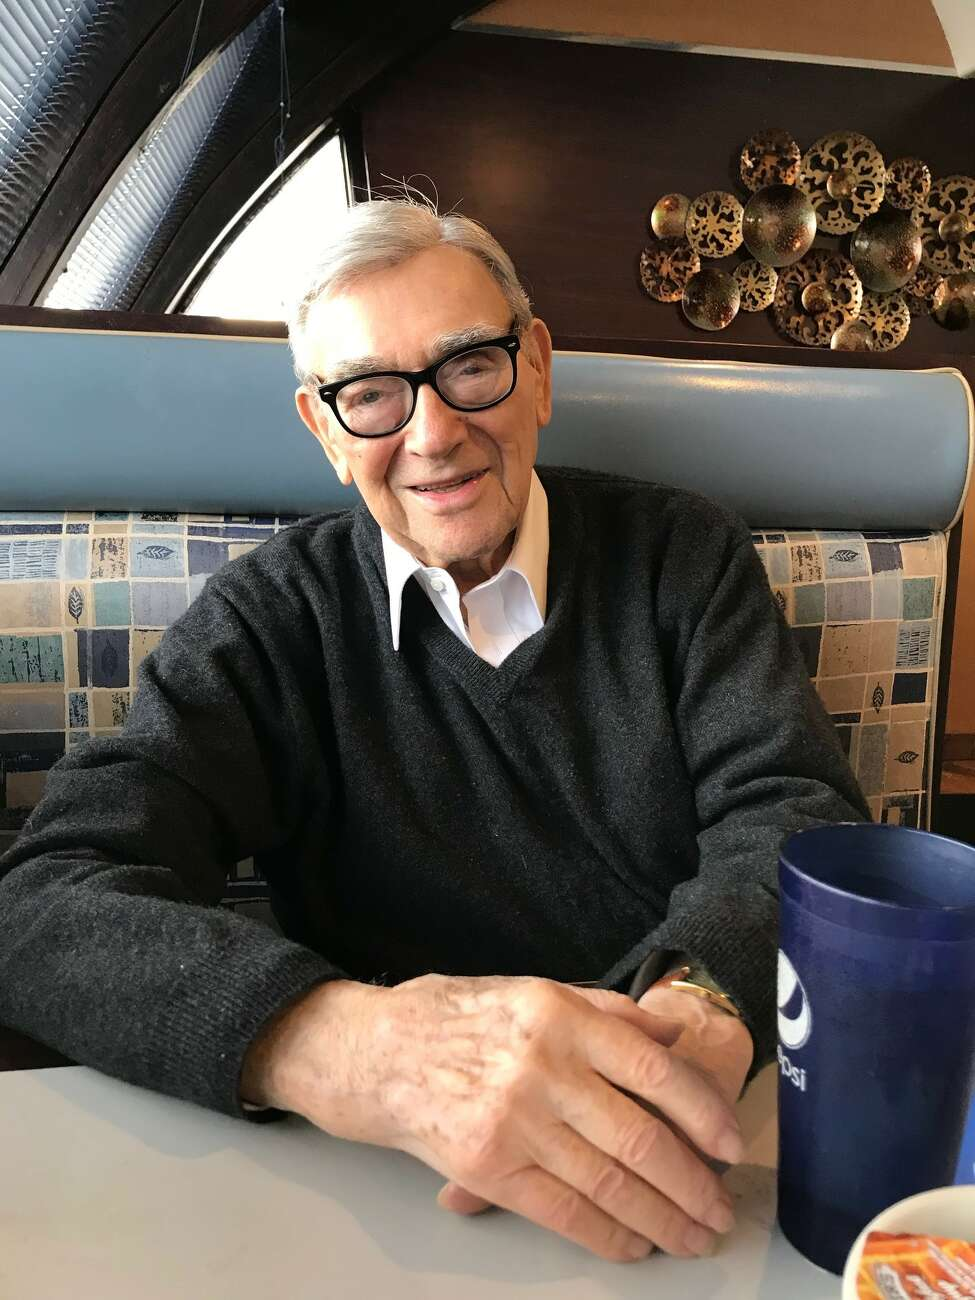 Leonard A. Weiss, the retired presiding justice of the Appellate Division of state Supreme Court, during a recent visit to the Gateway Diner in Albany.